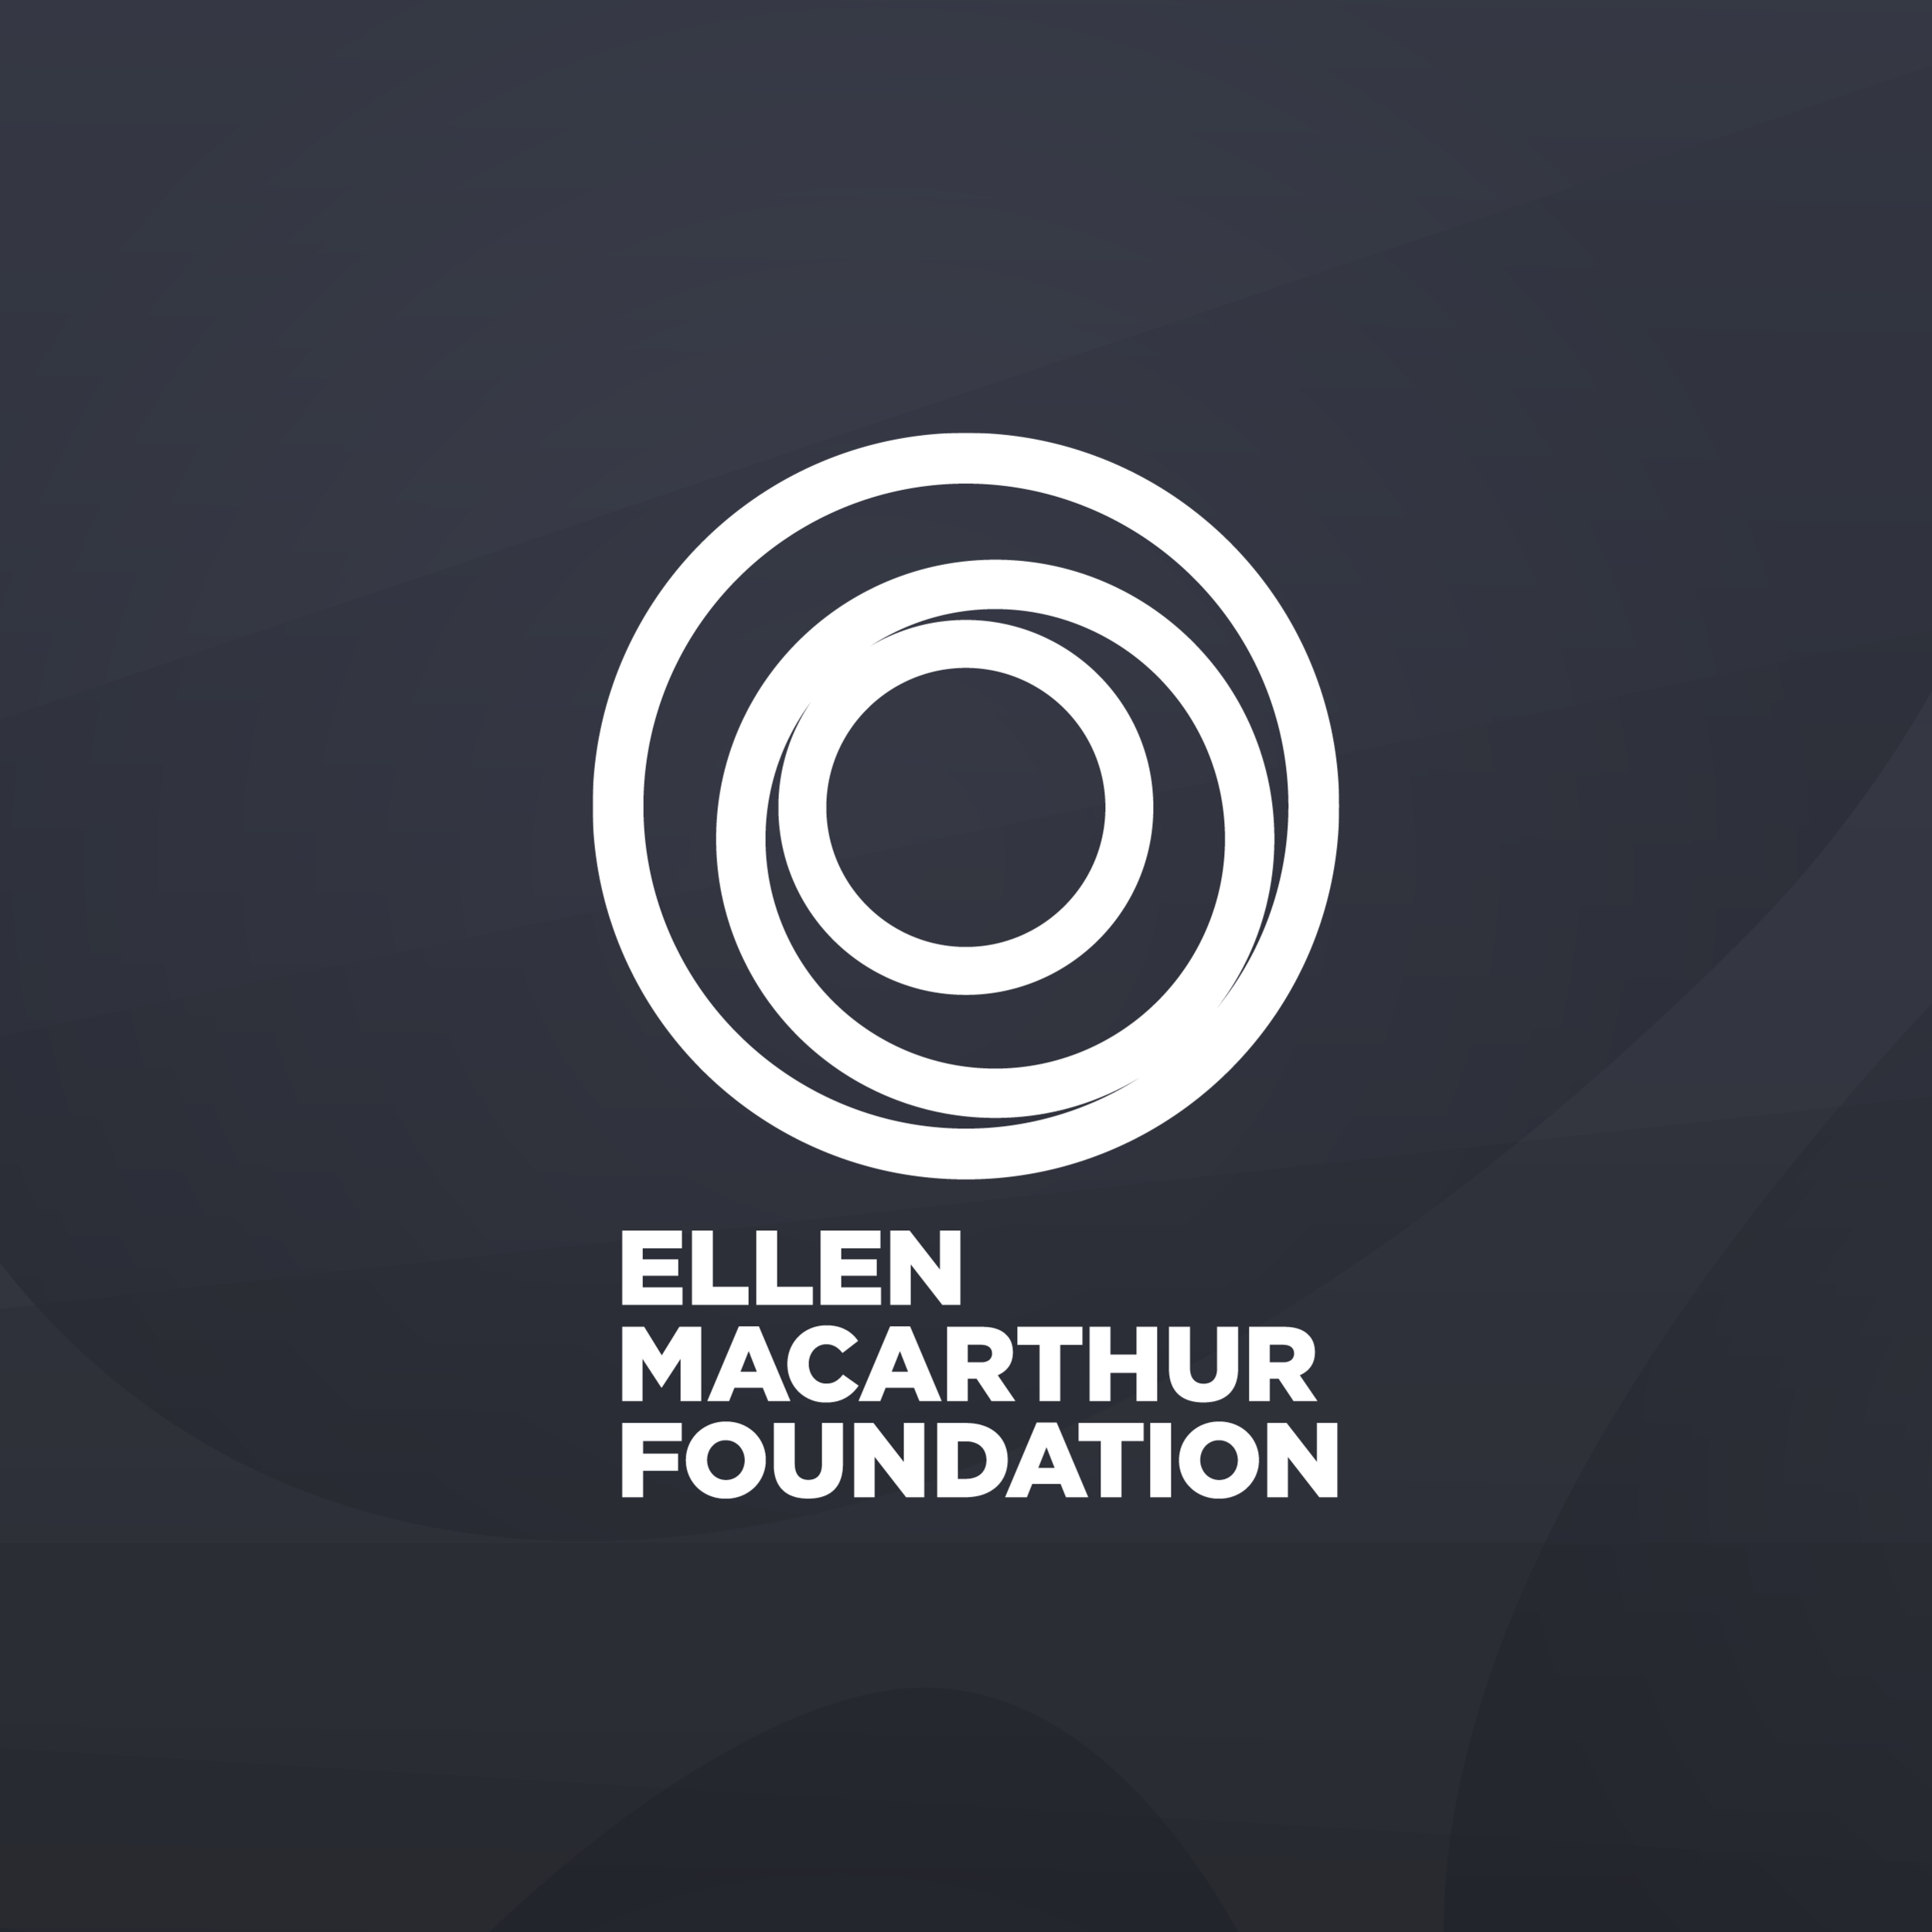 Want to know more about the circular economy? The Ellen MacArthur Foundation is leading the way in circular design thinking.